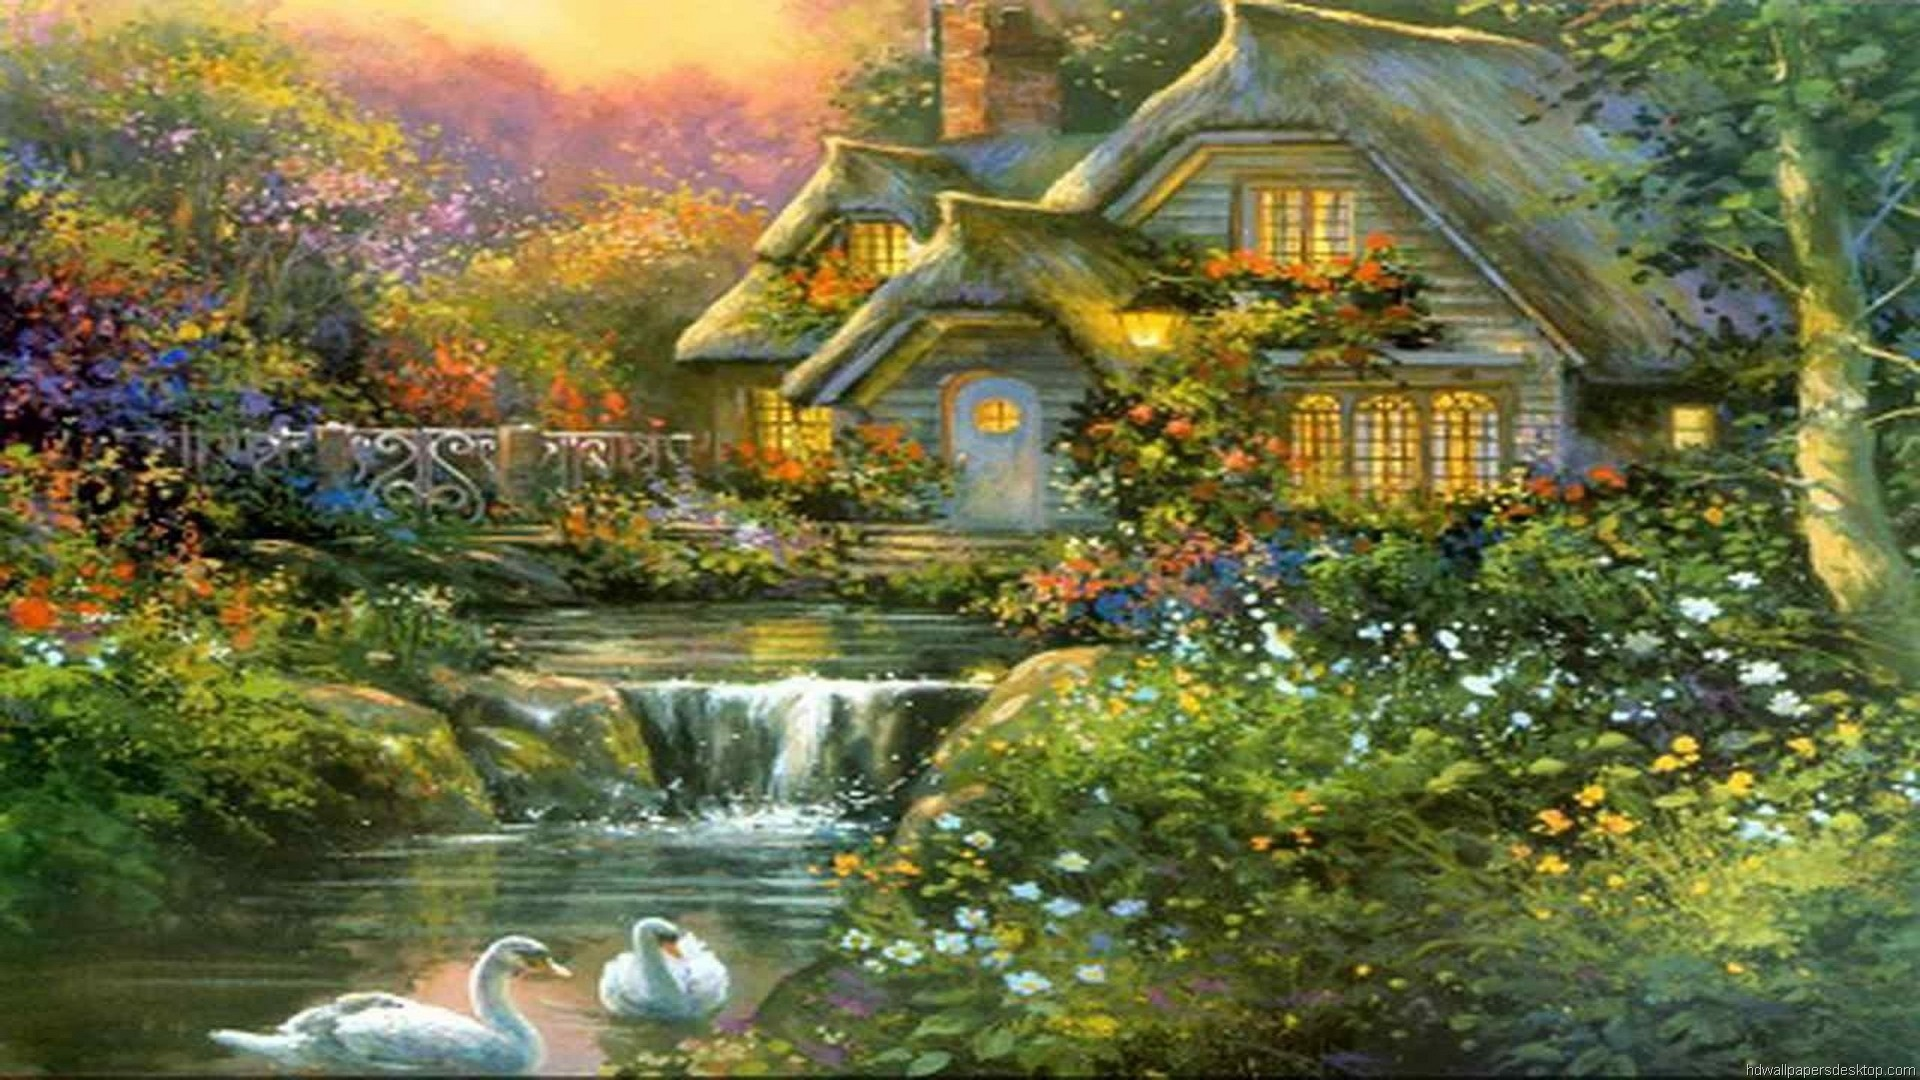 1920x1200 Thomas Kinkade Wallpaper 29, Art Wallpaper, Art Painting Wallpaper